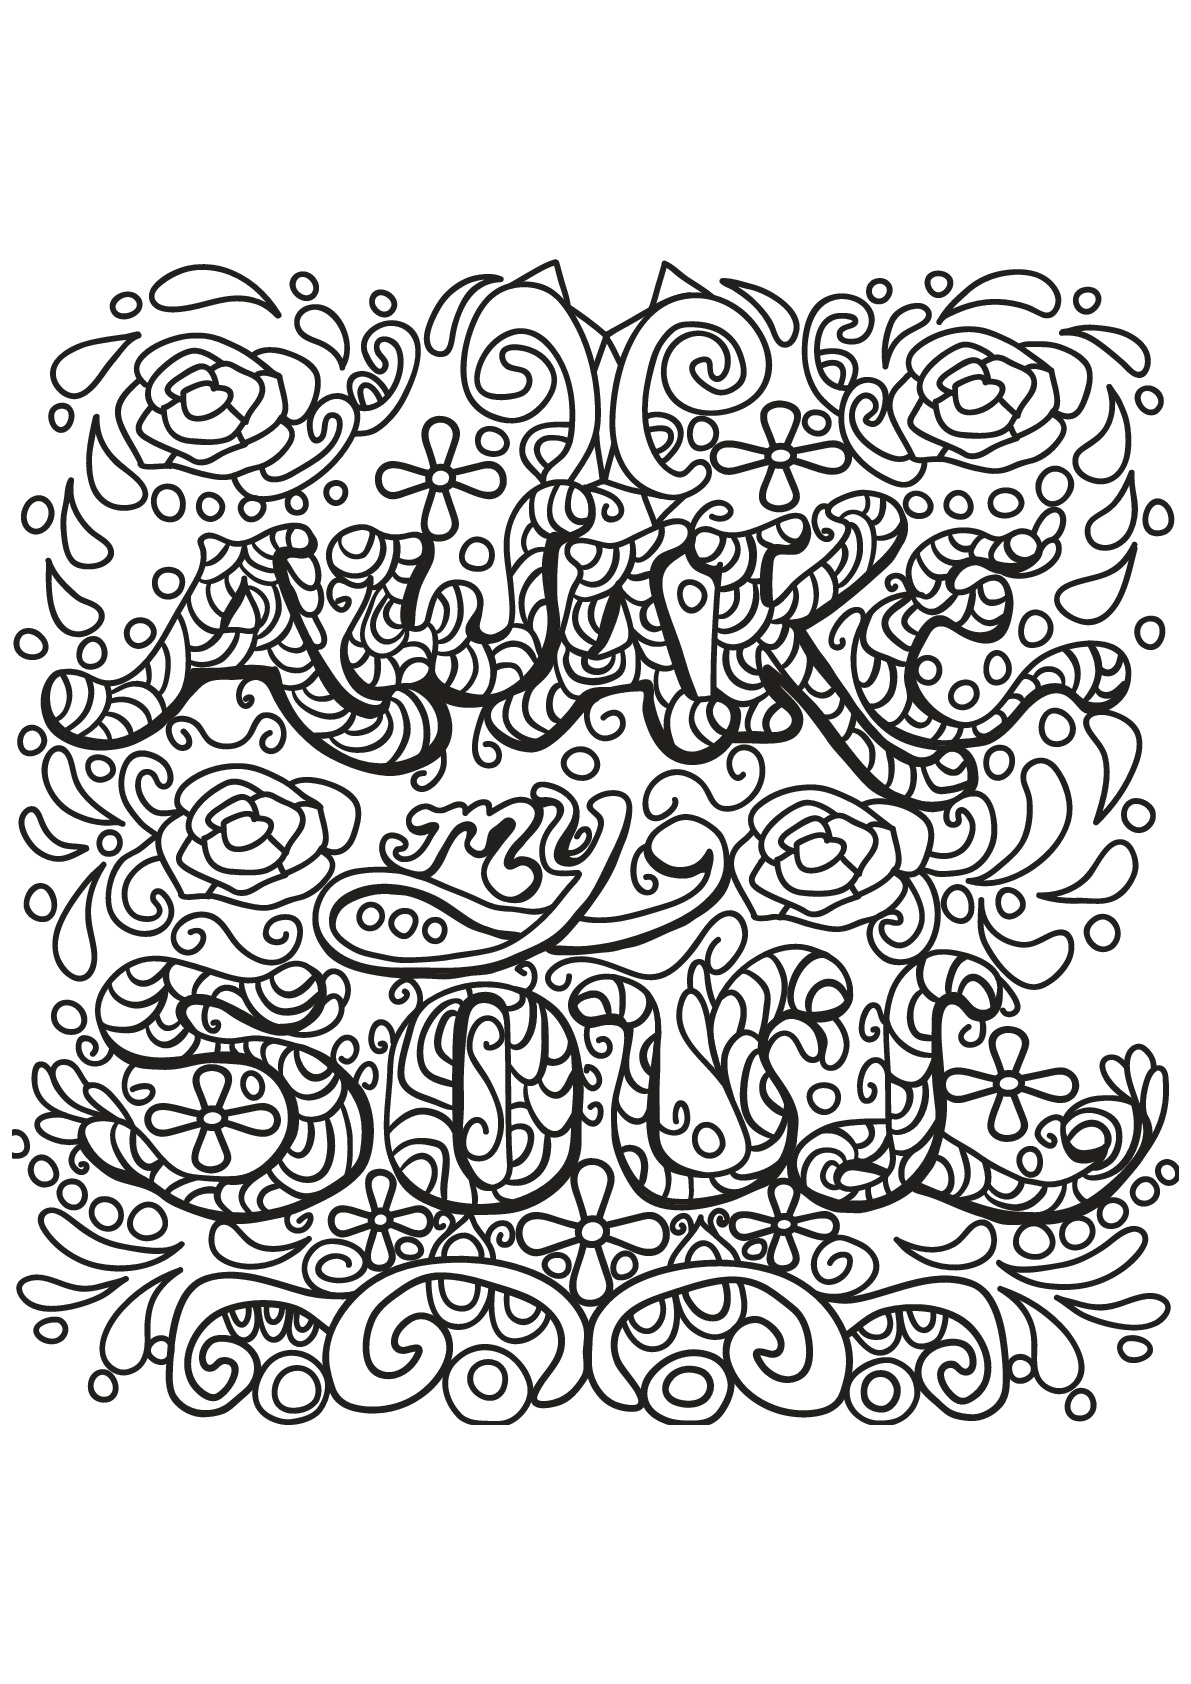 coloring free book quote 9 - Quote Coloring Pages